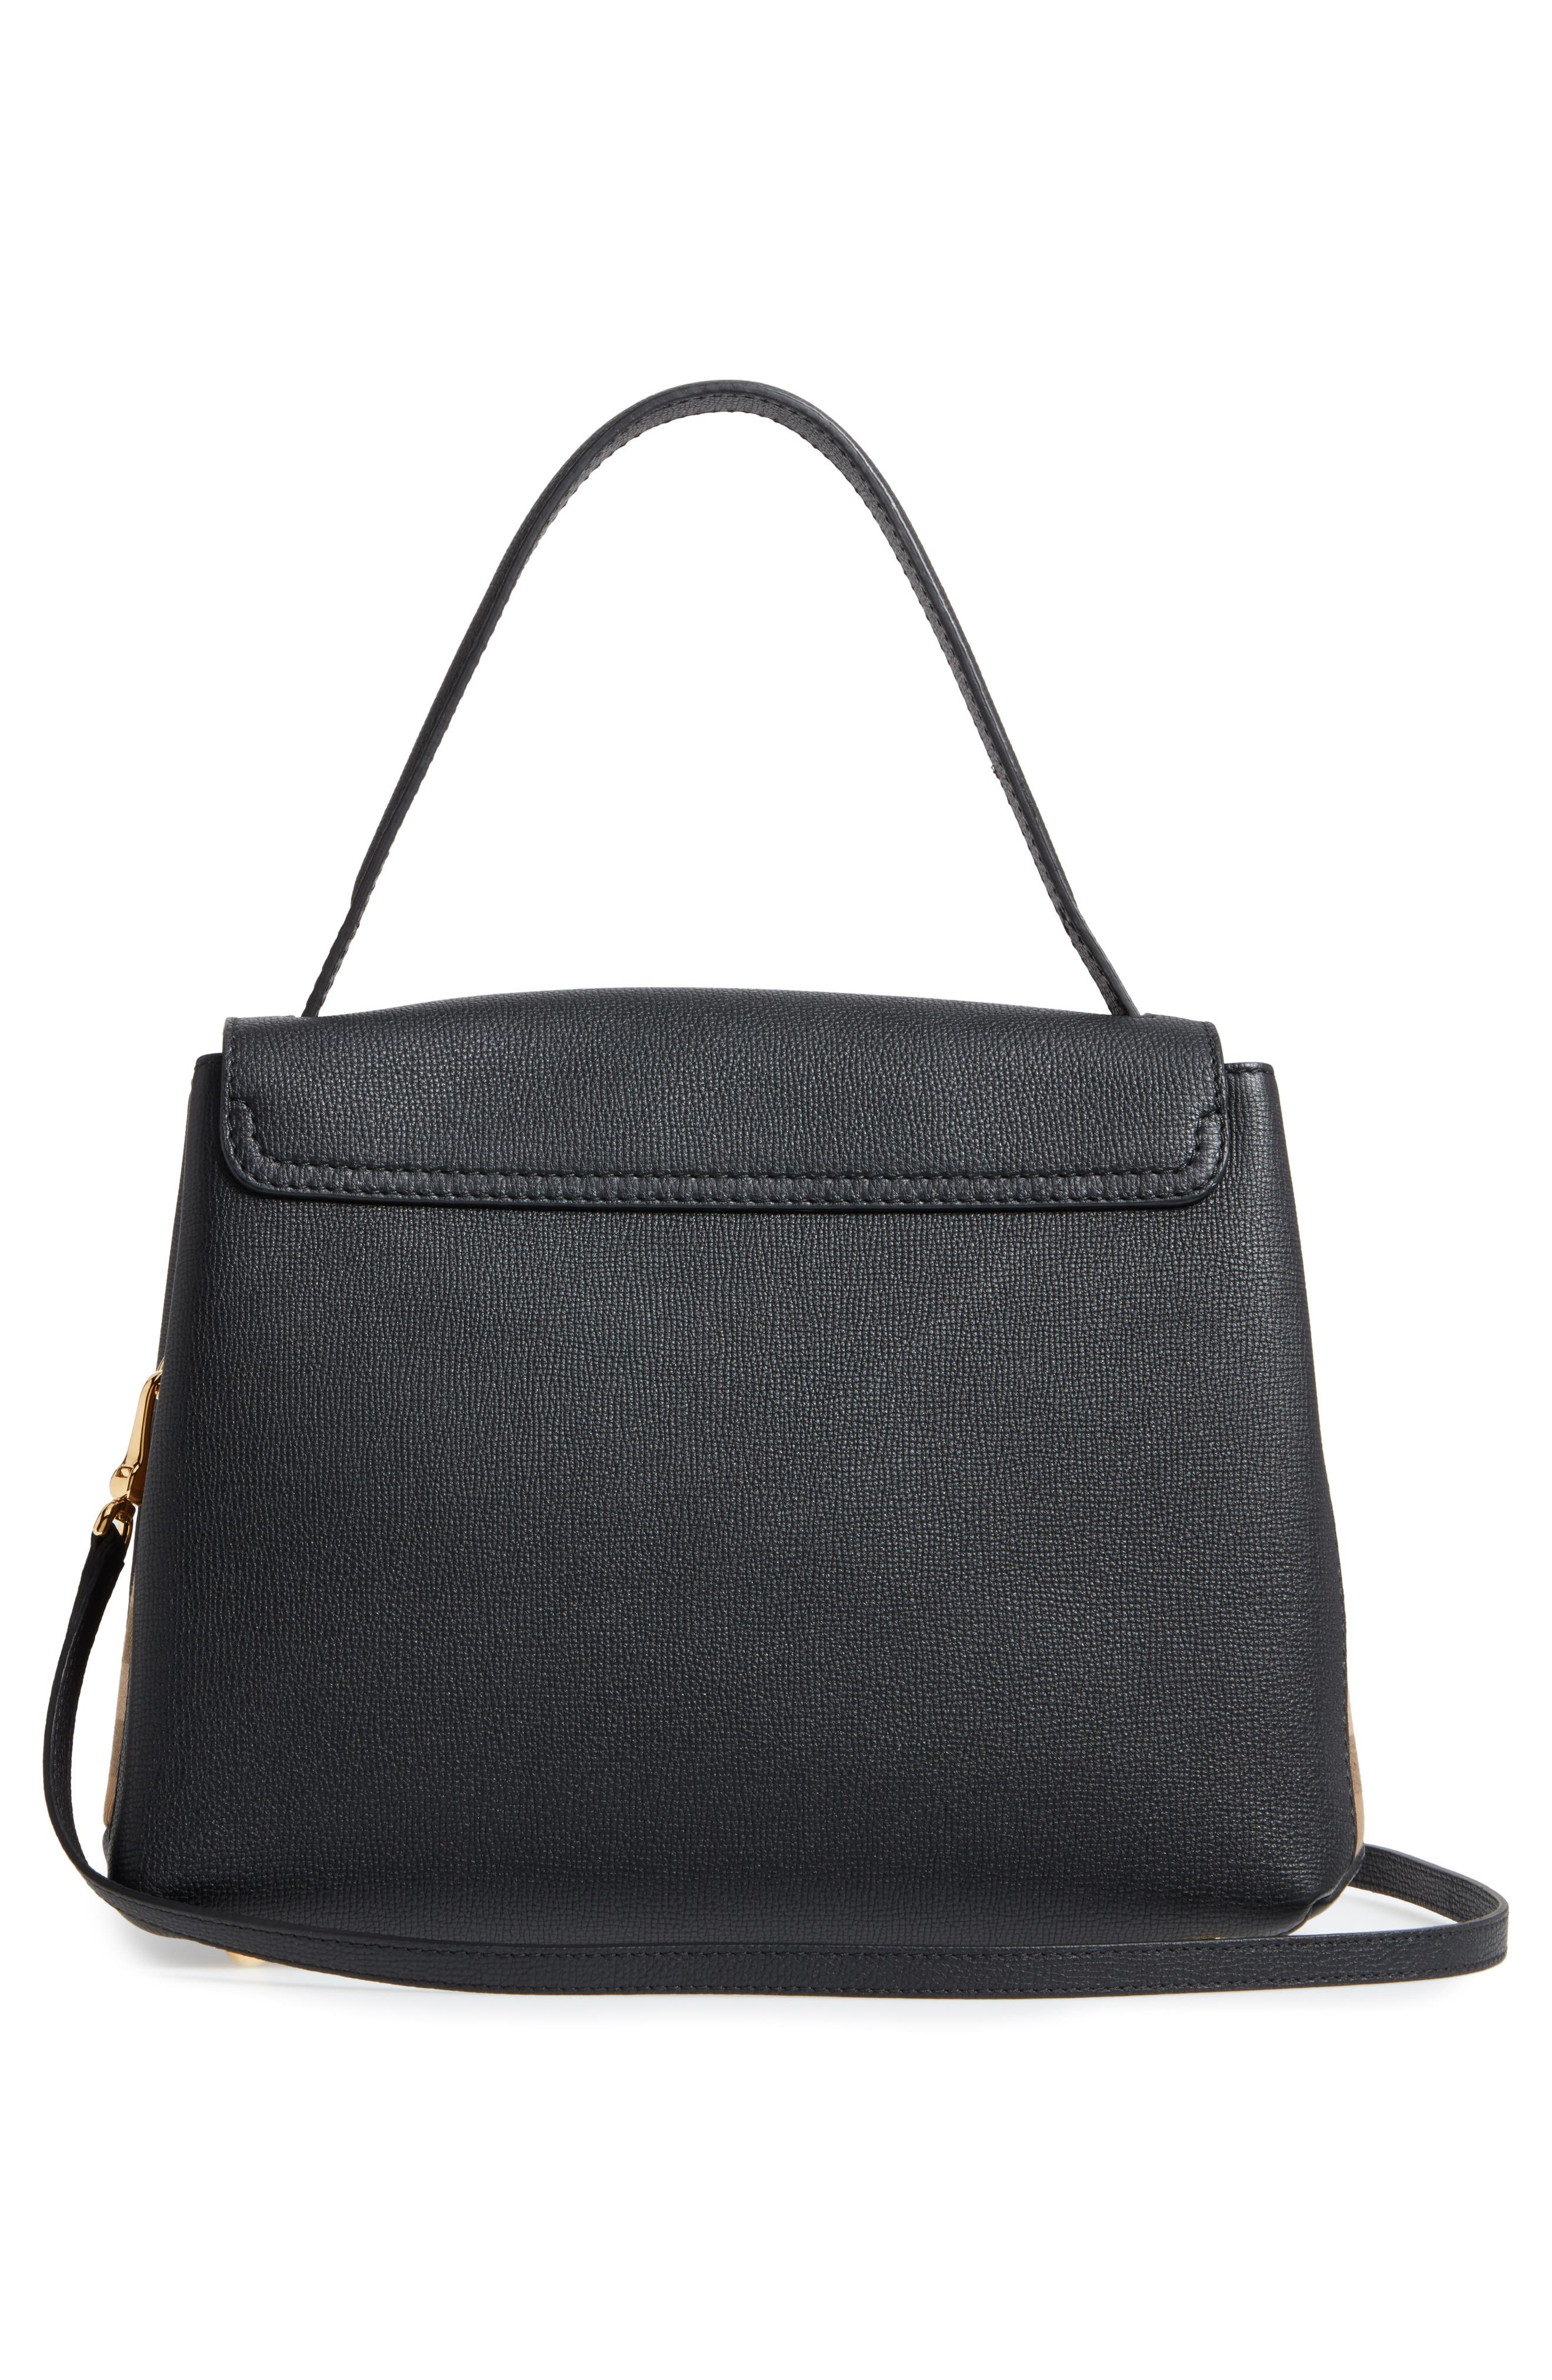 Medium Camberley Leather & House Check Top Handle Satchel,                             Alternate thumbnail 3, color,                             Black